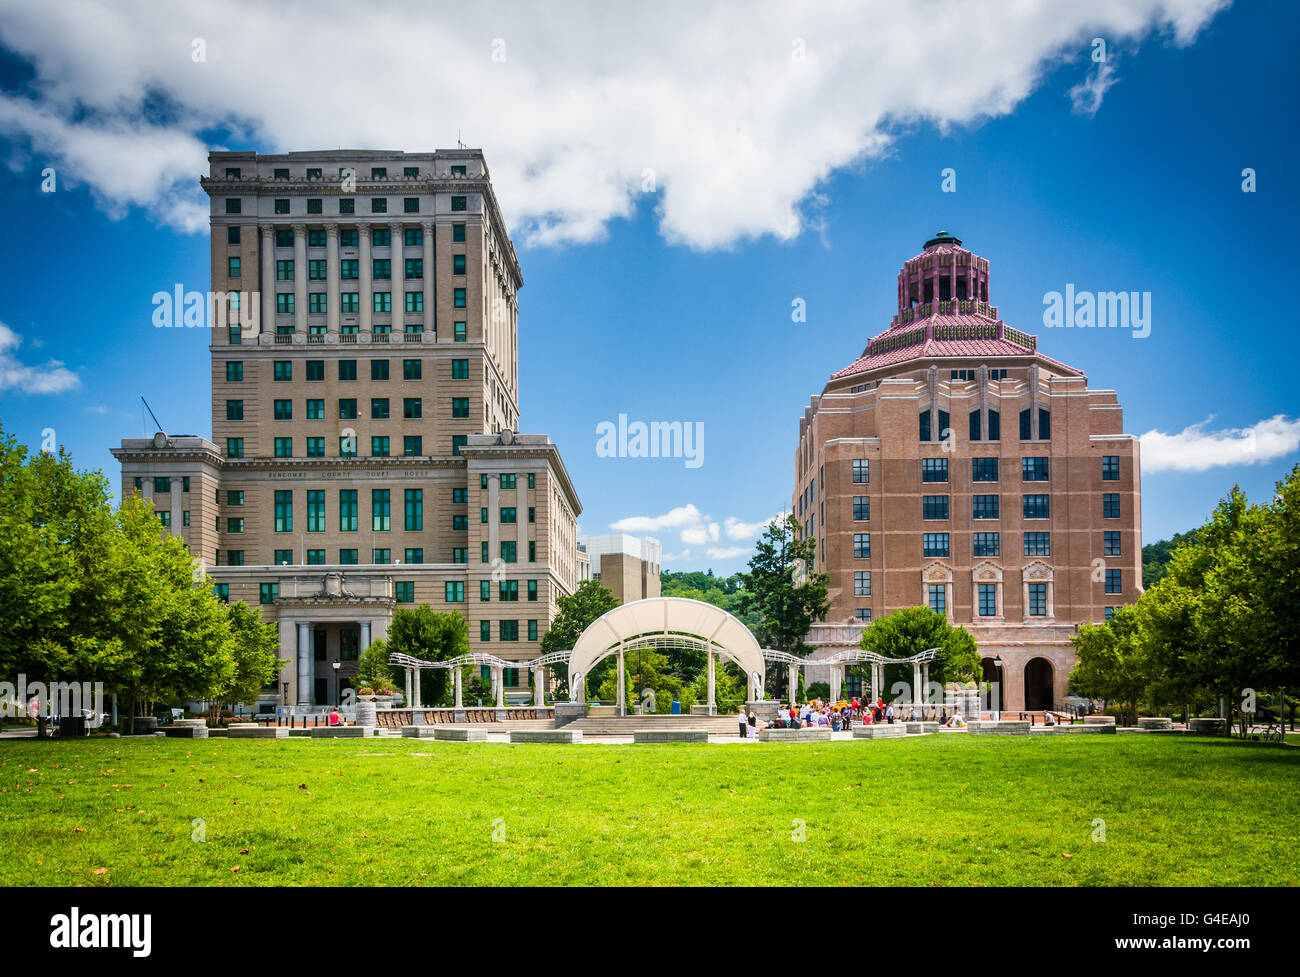 Buncombe County Courthouse and Asheville City Hall, in Asheville, North Carolina. Stock Photo